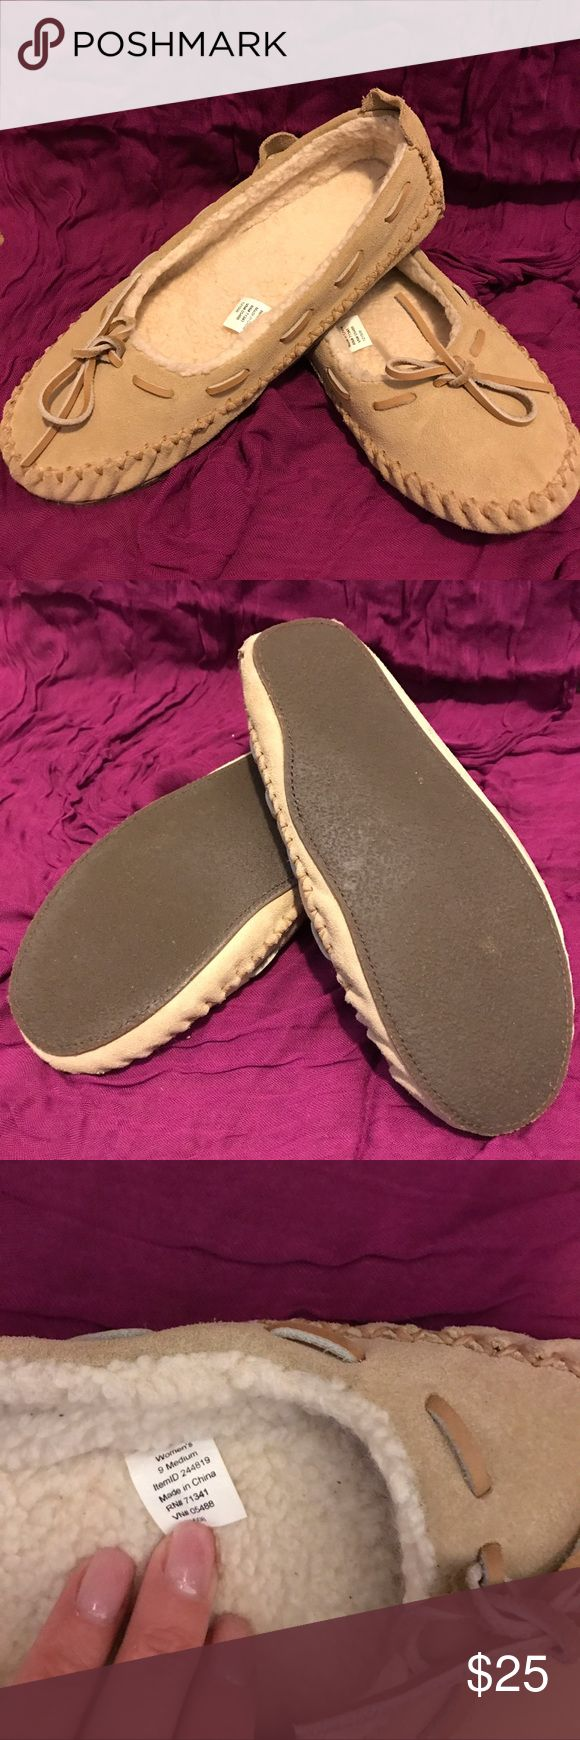 LL Bean Slippers Lovely LL BEan slippers. Super cozy and in great condition! LL Bean Shoes Slippers